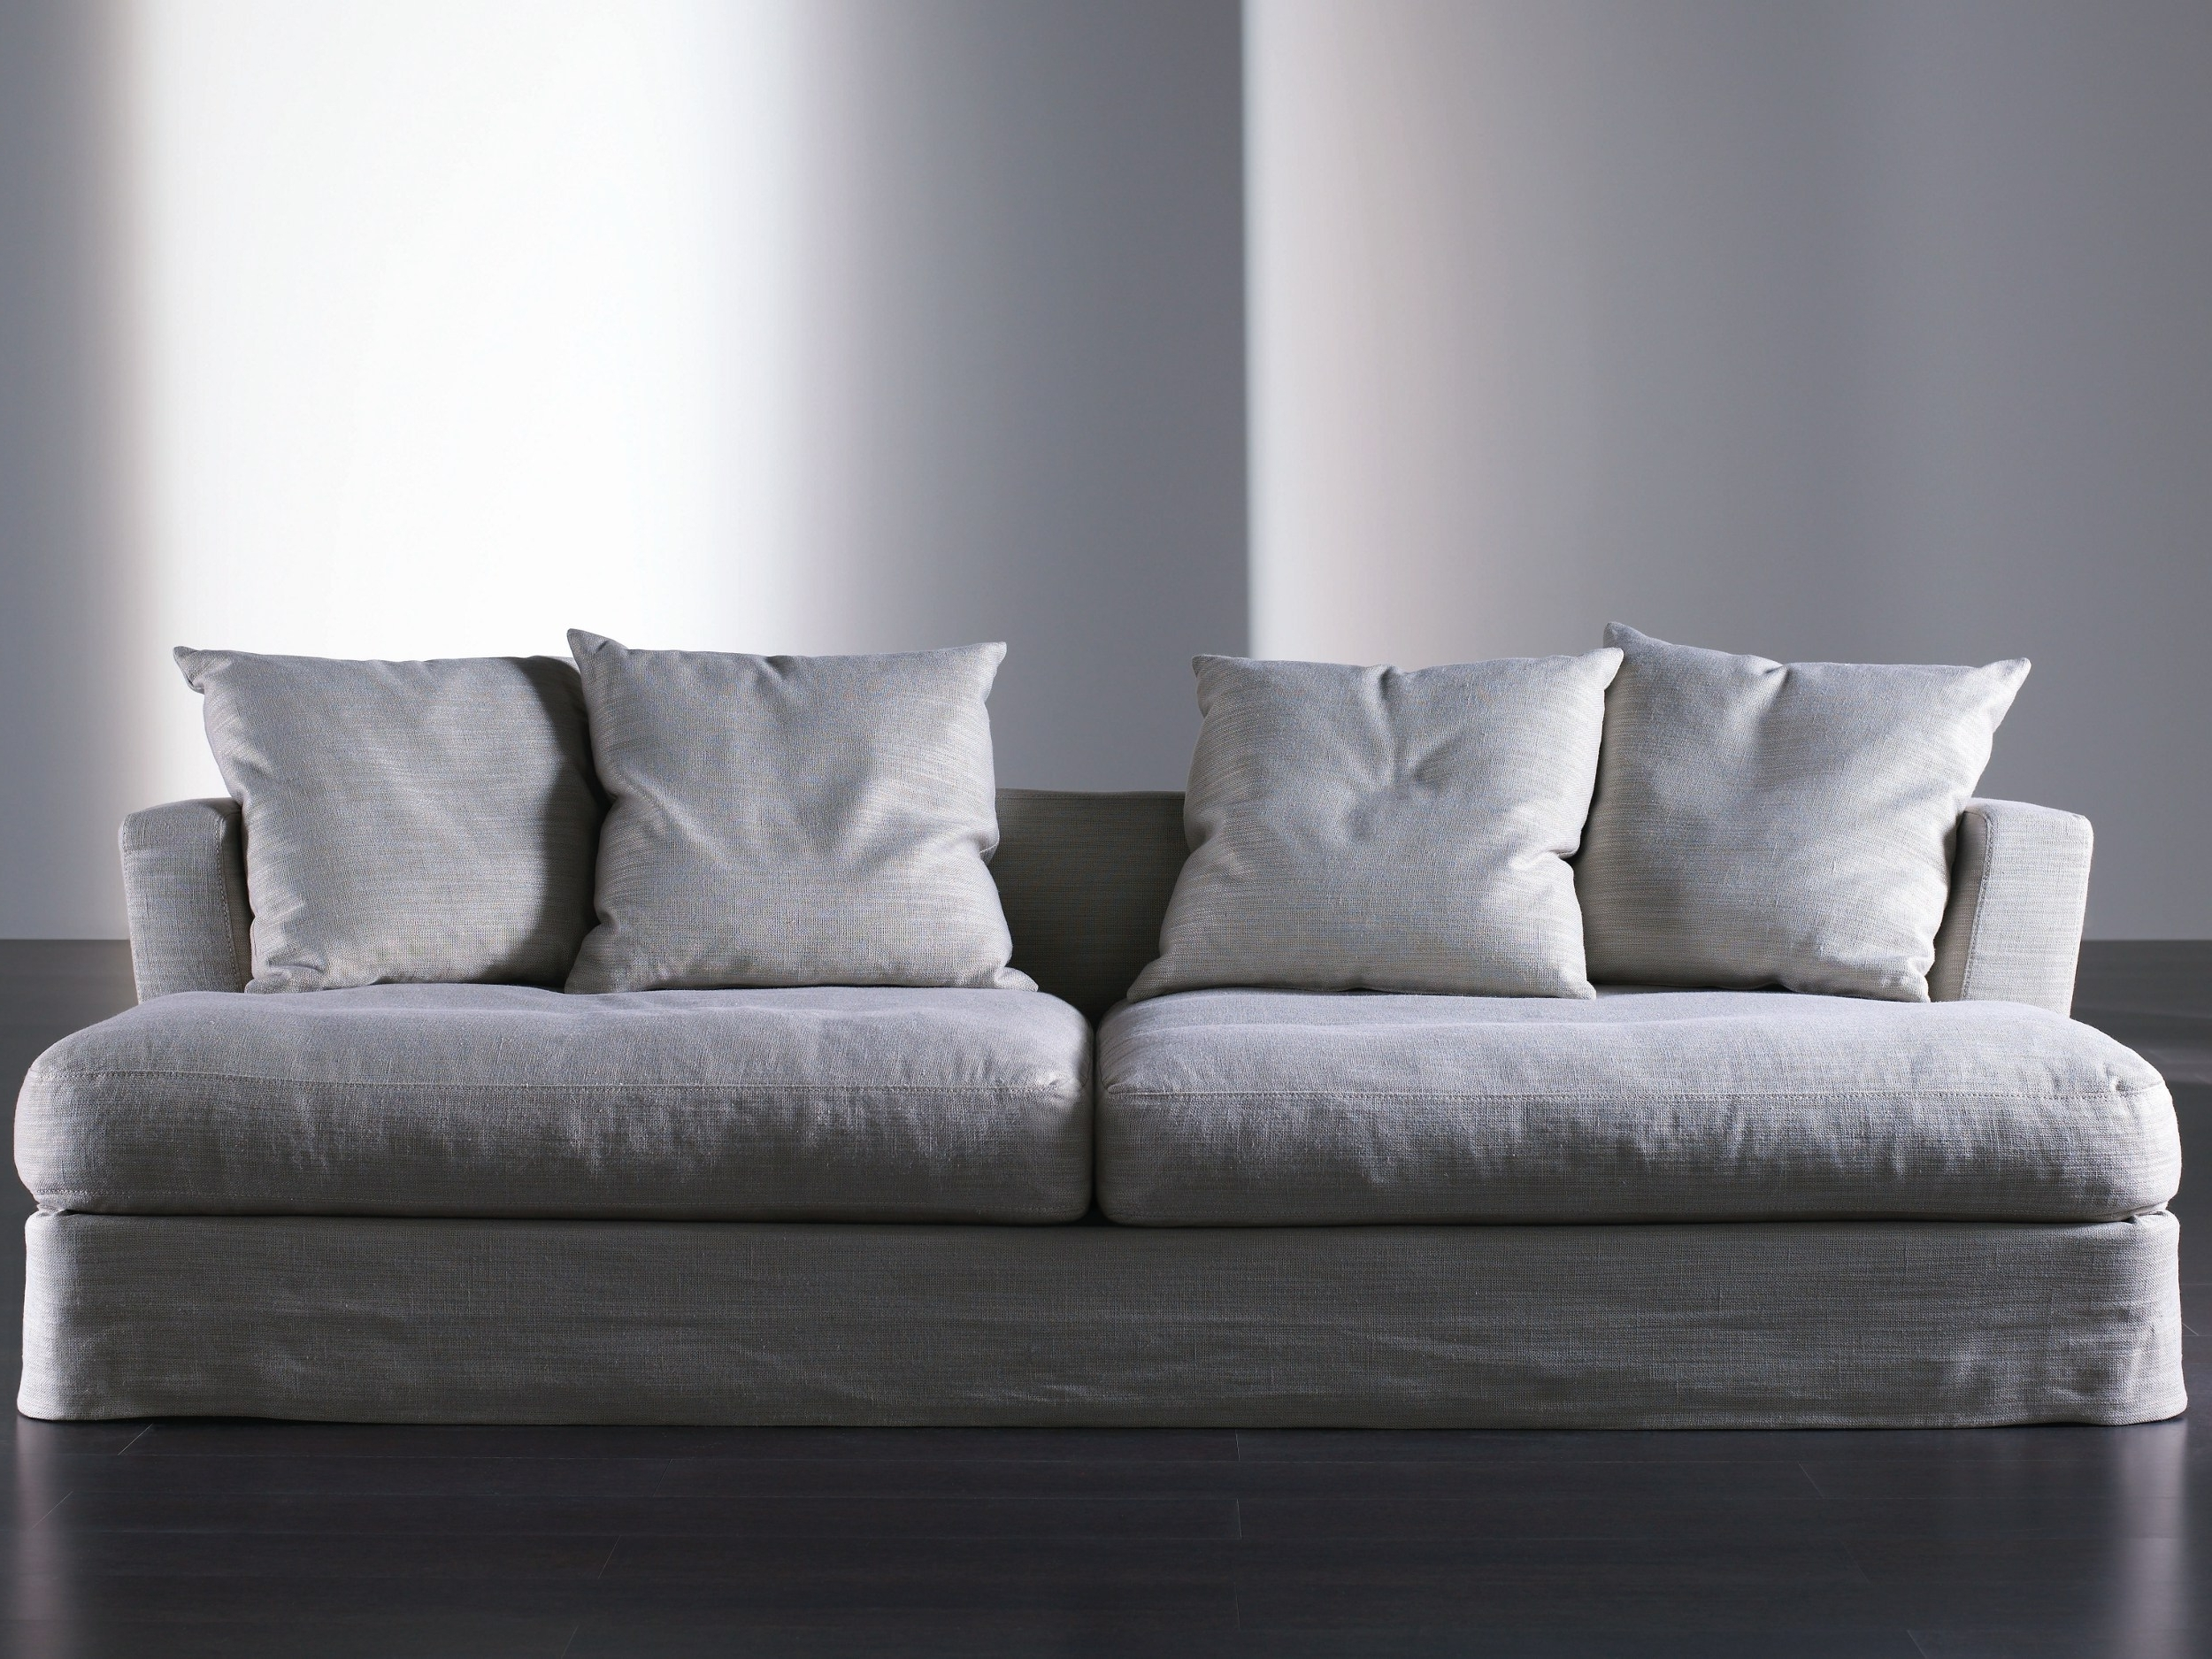 Sofas With Removable Cover Within Most Current Upholstered Sofa With Removable Cover Keaton Ghost – Meridiani (View 13 of 15)